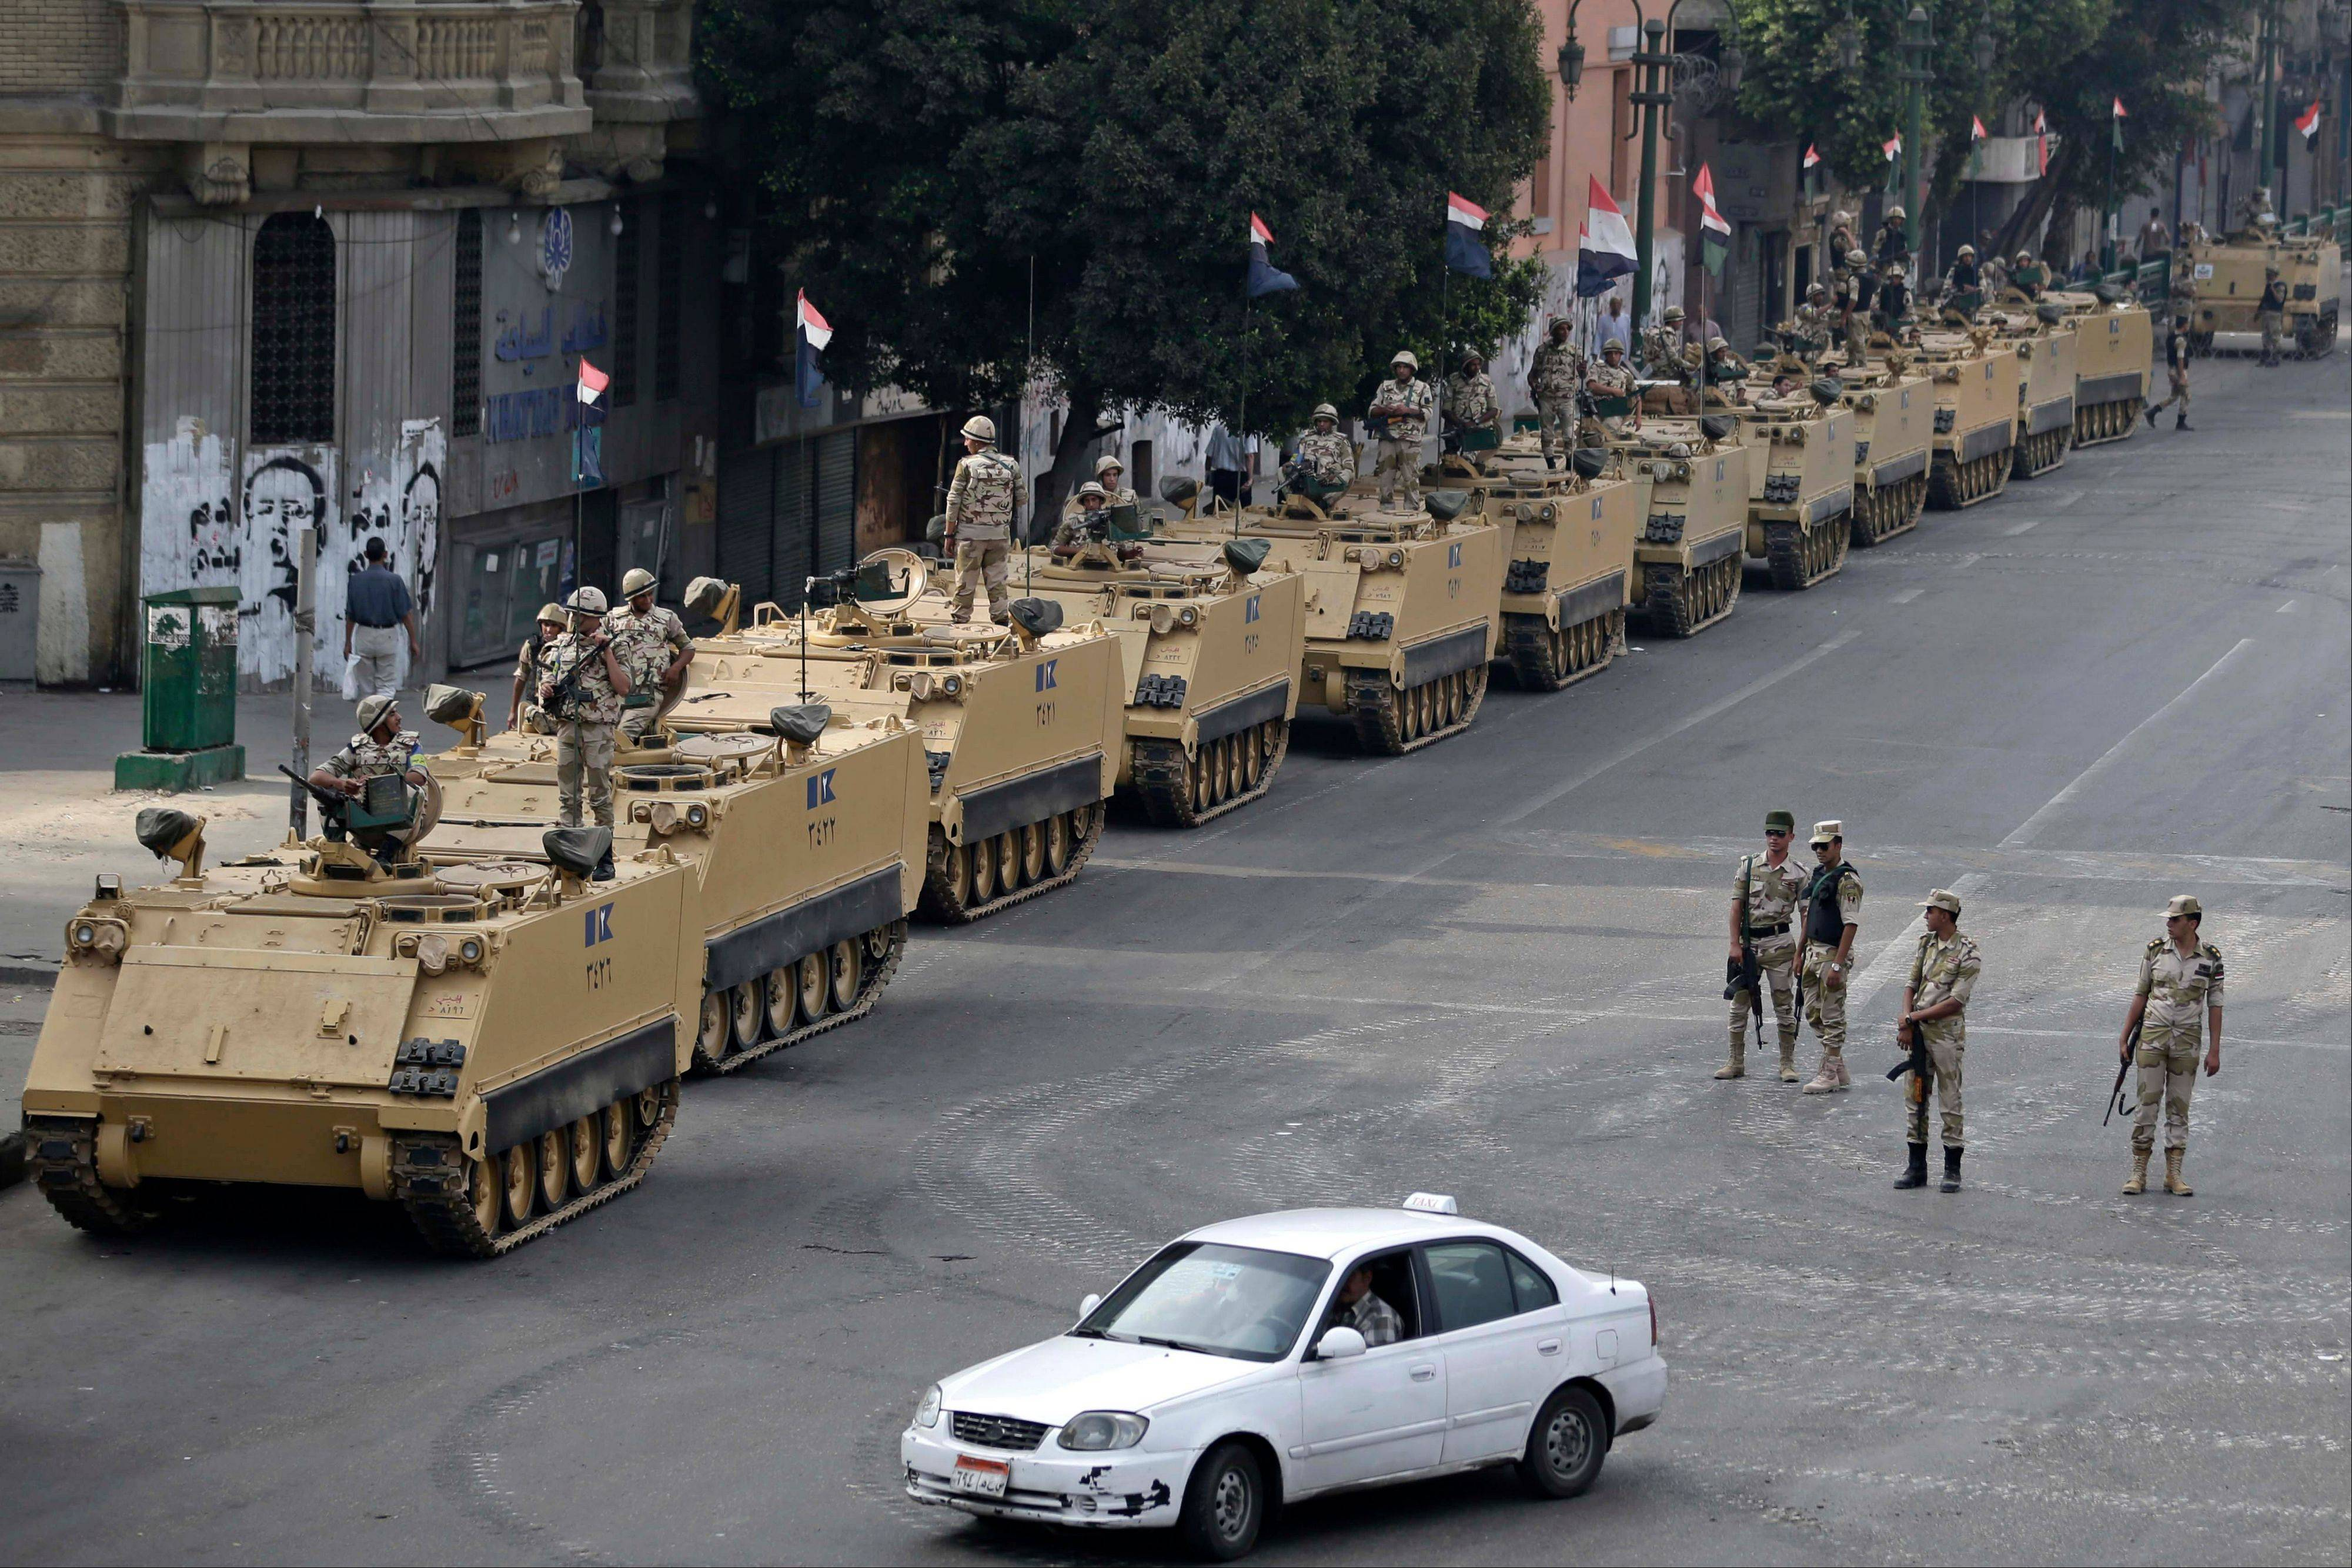 Egyptian army soldiers take positions on top of and next to armored vehicles to guard an entrance to Tahrir Square in Cairo during disturbances in August. U.S. officials said Wednesday the Obama administration is poised to slash hundreds of millions of dollars in military and economic assistance to Egypt.